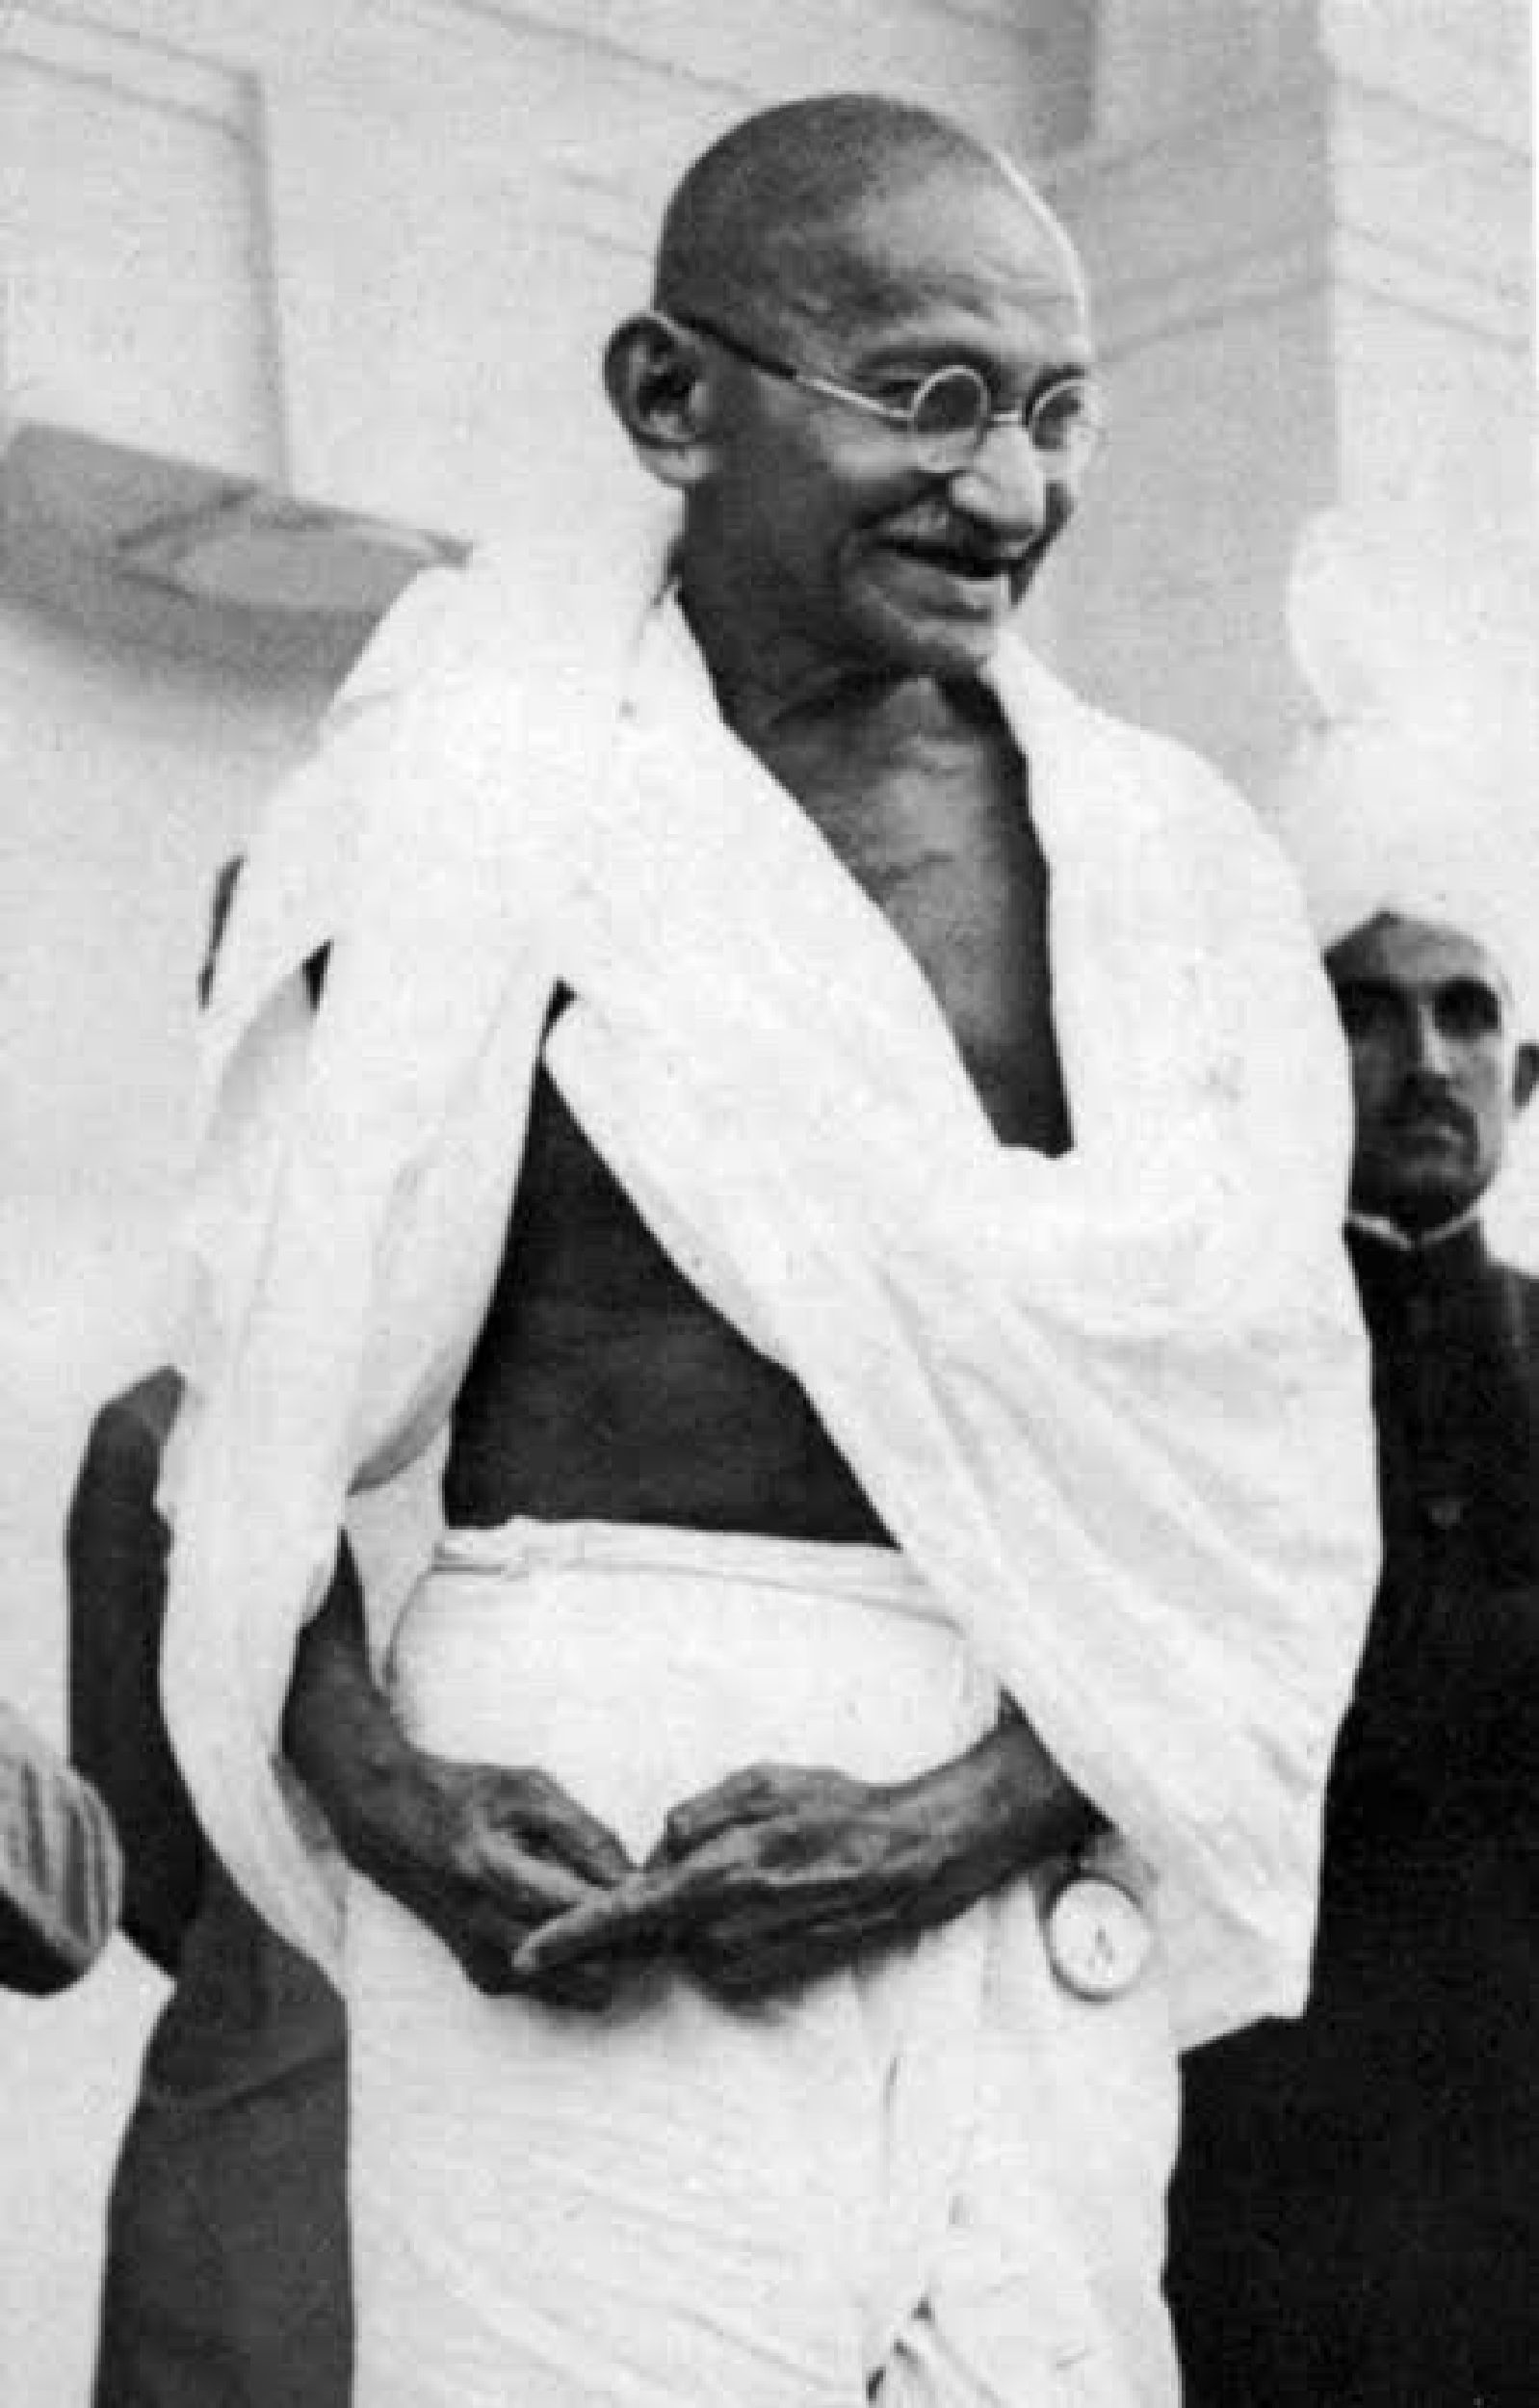 Gandhi was assassinated on this day in 1948